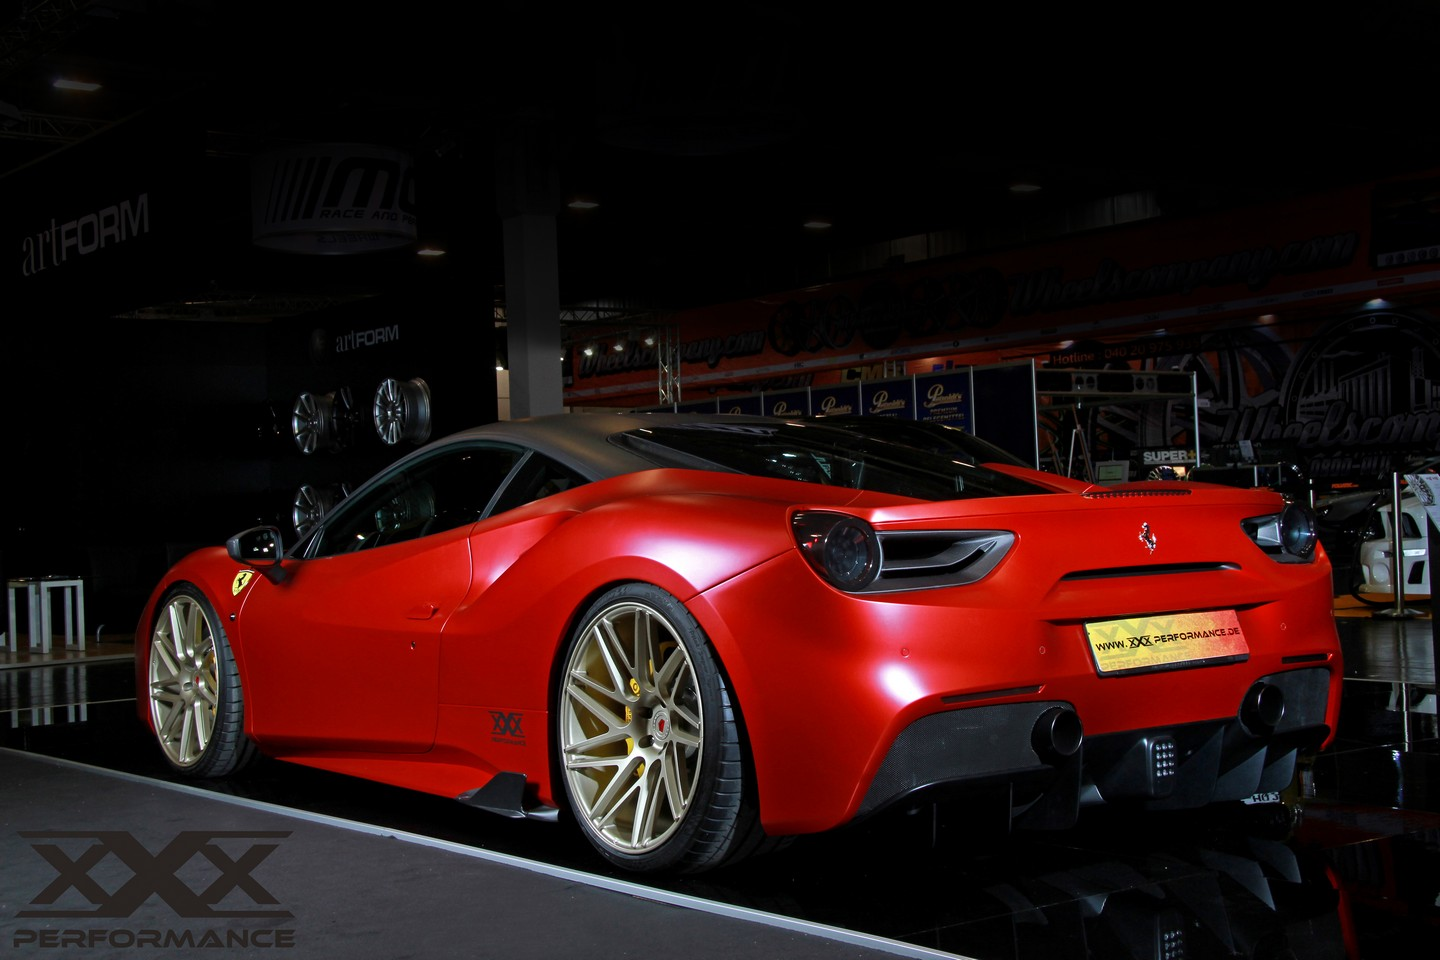 ferrari-488-gtb-tuning-xxx-performance-6